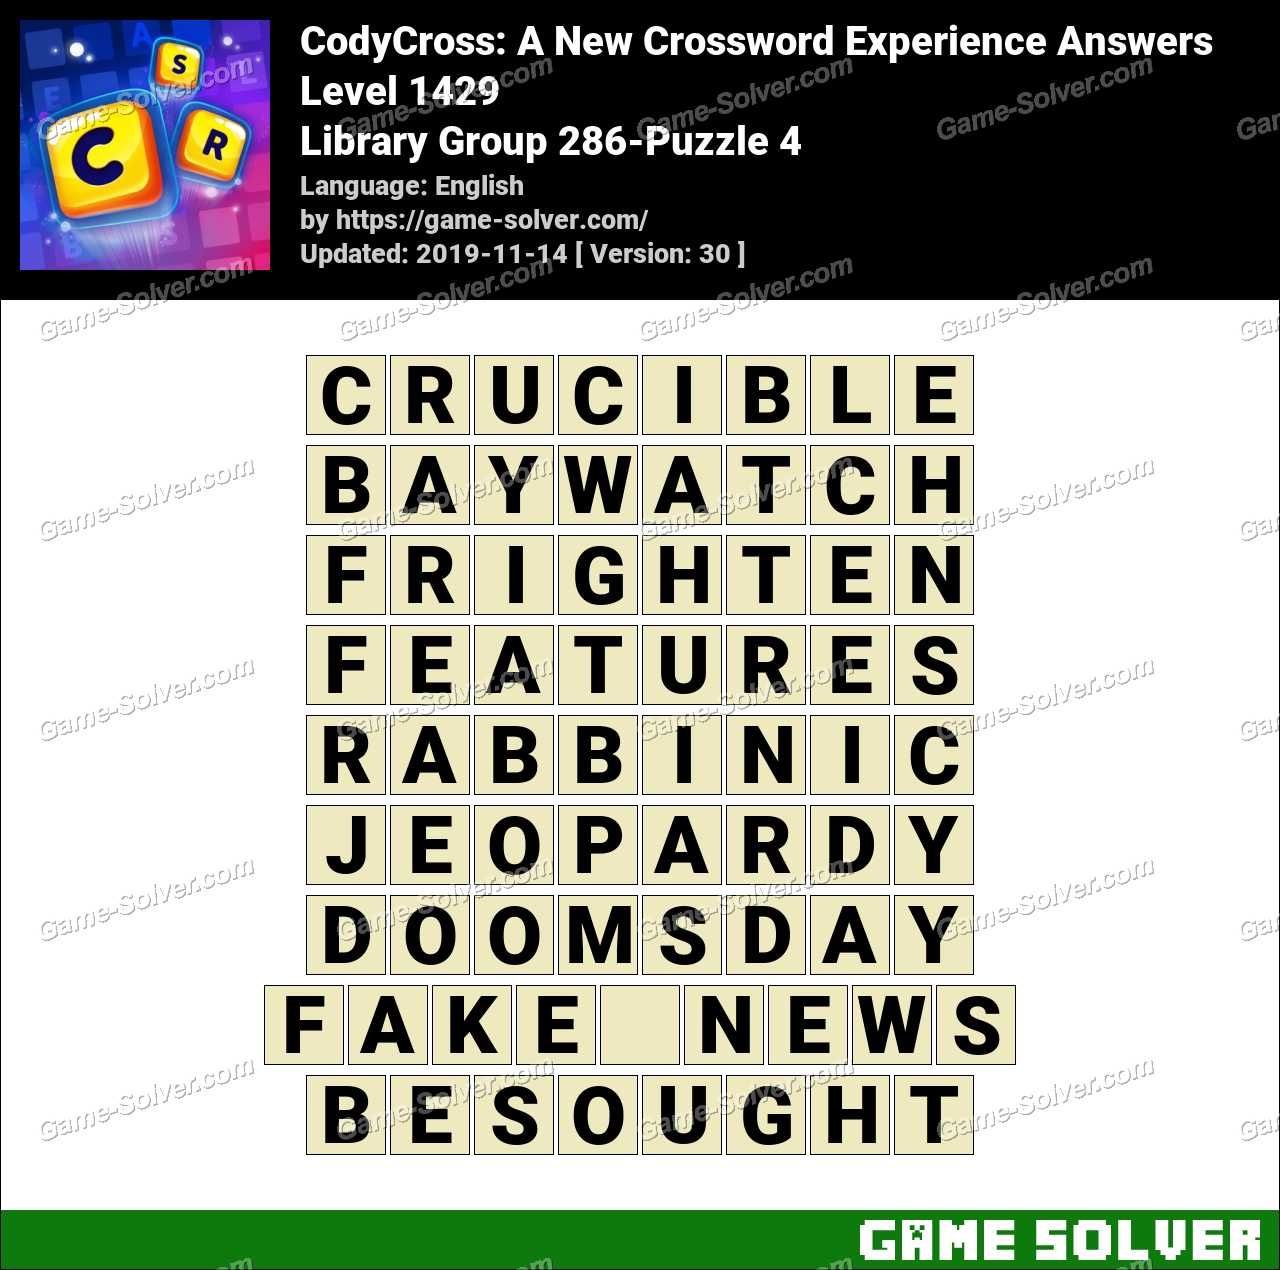 CodyCross Library Group 286-Puzzle 4 Answers